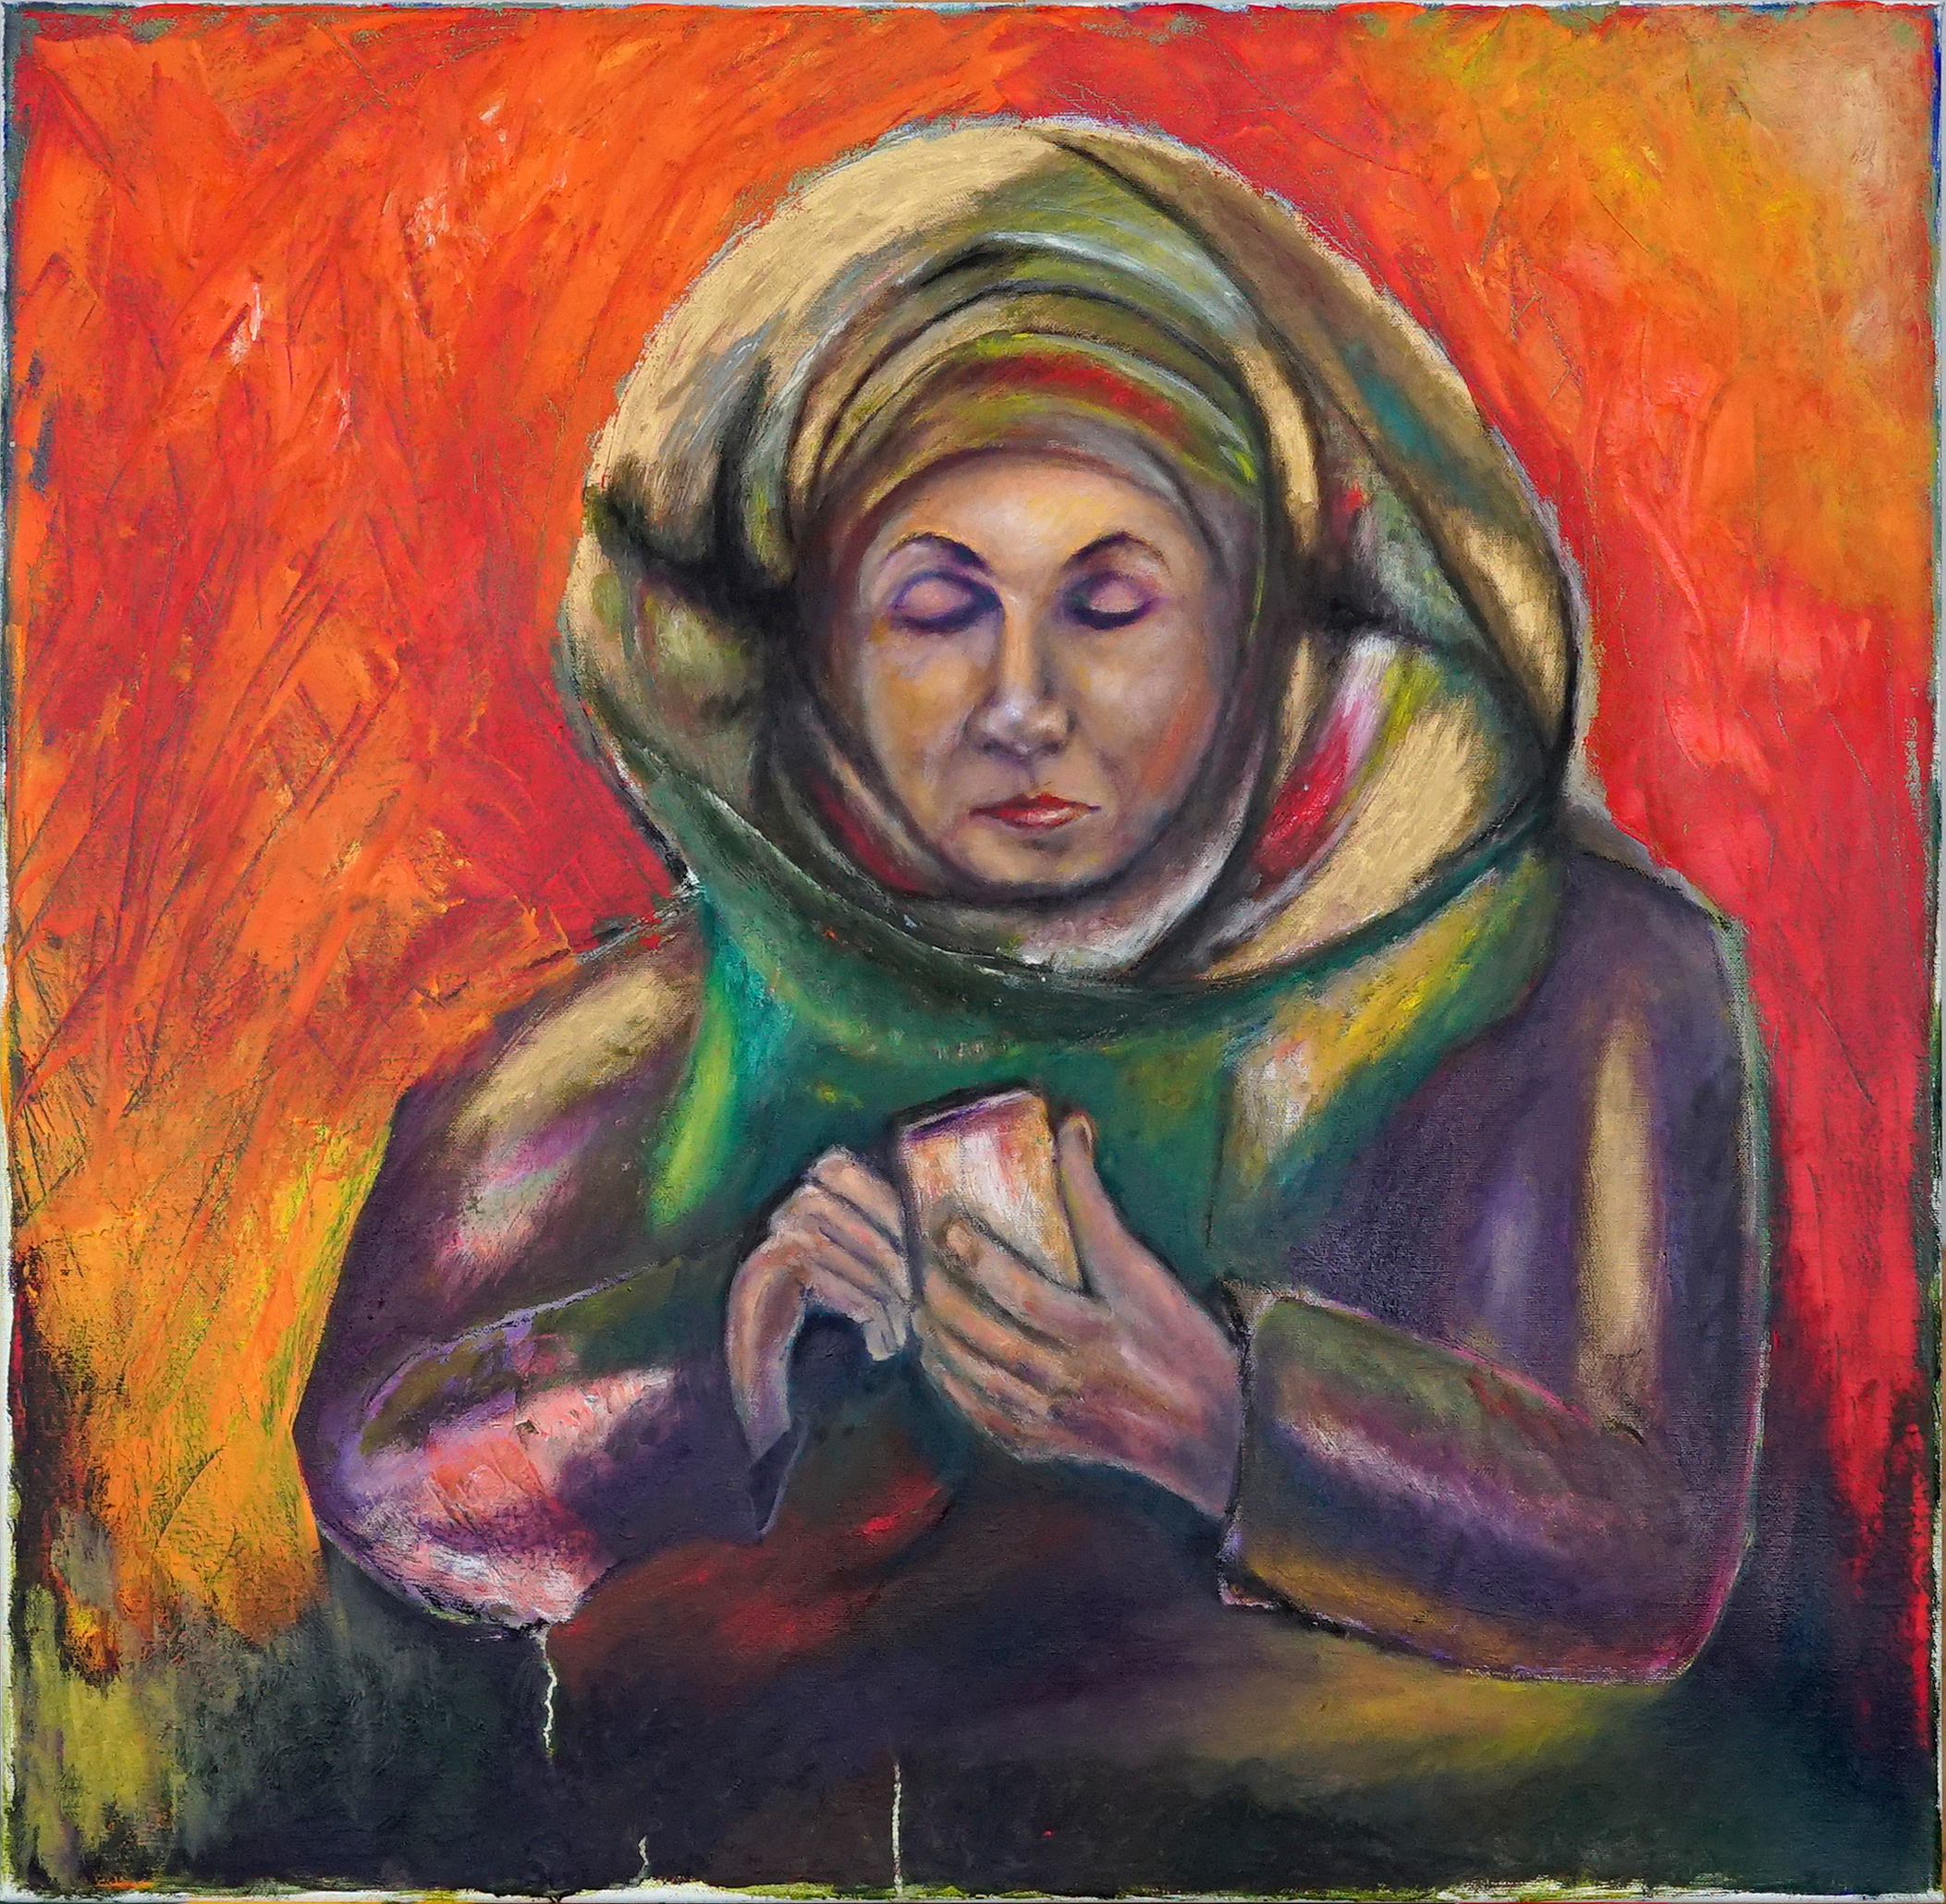 marya call 70x70 cm, oil on canvas